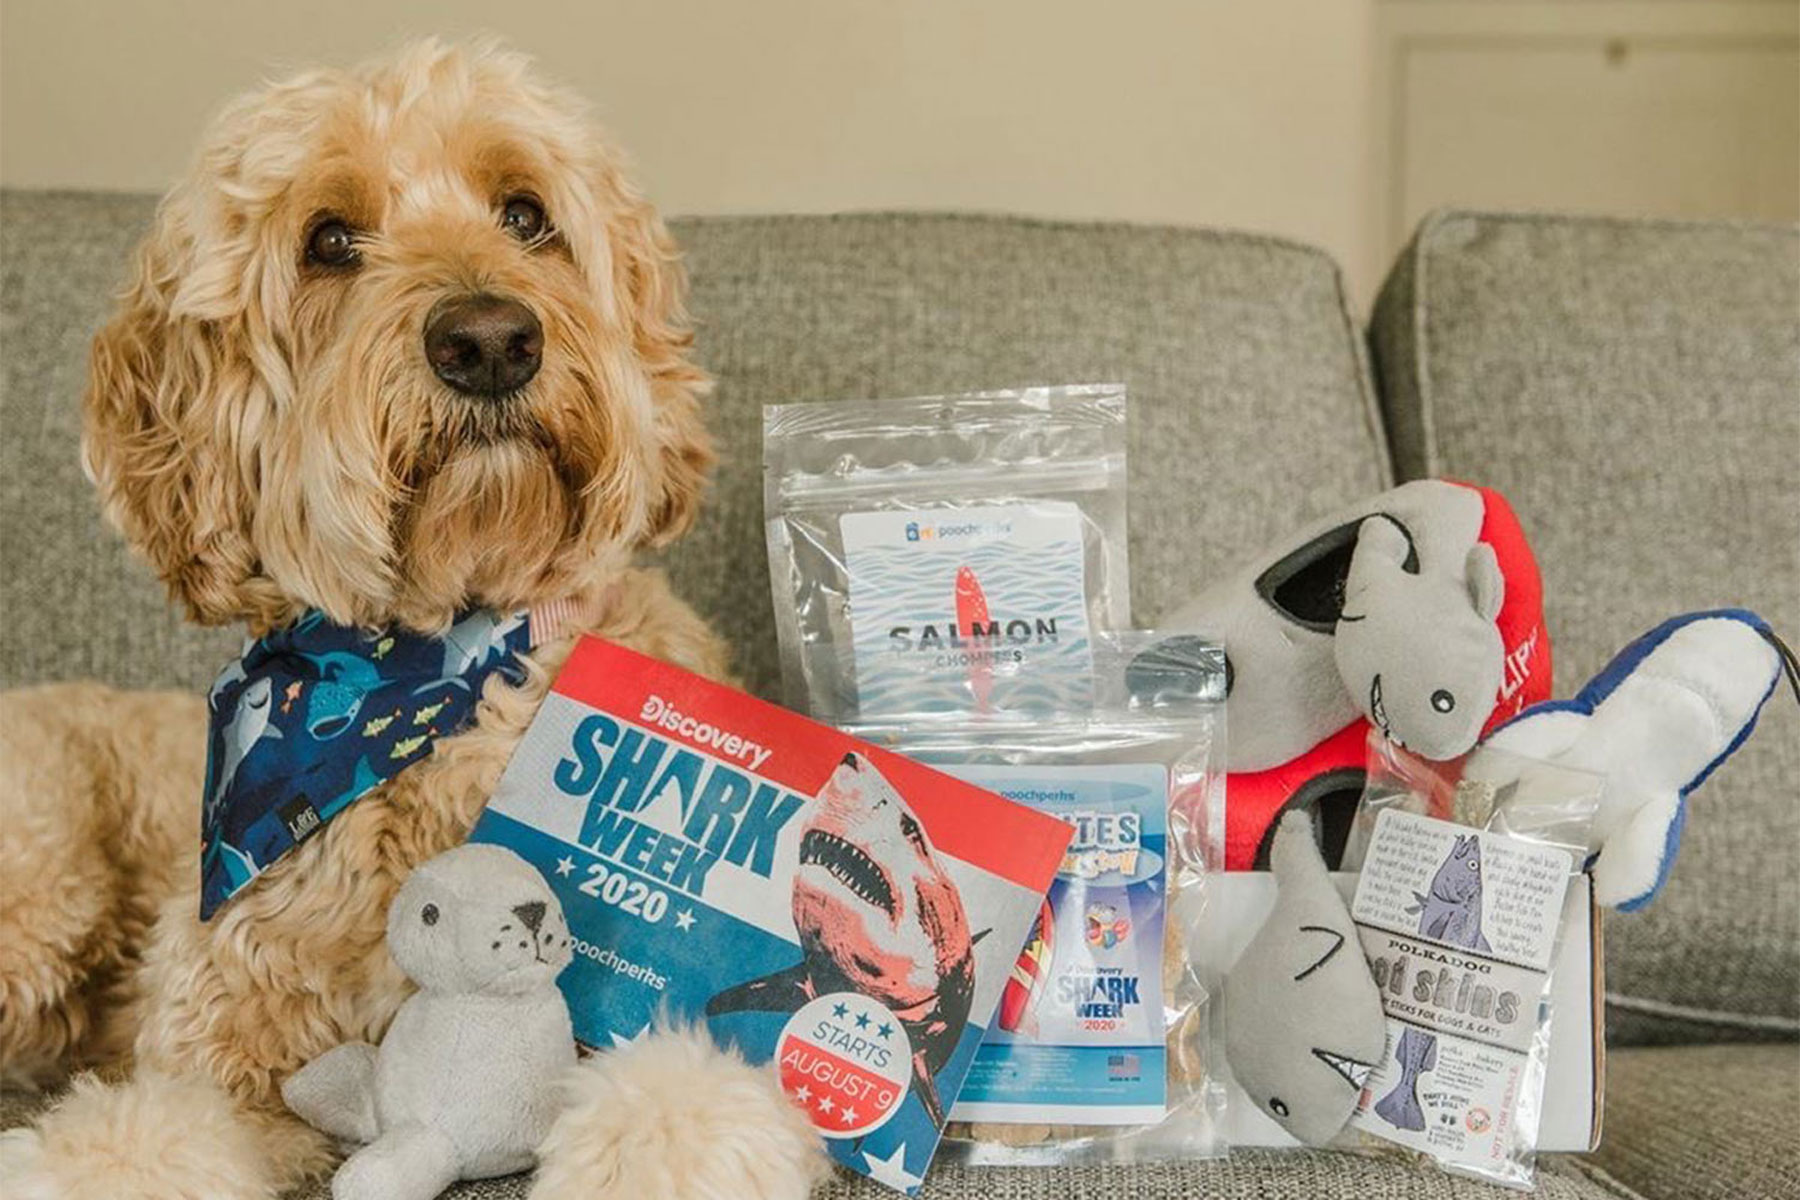 dog posed with 'Shark Week' branded toys